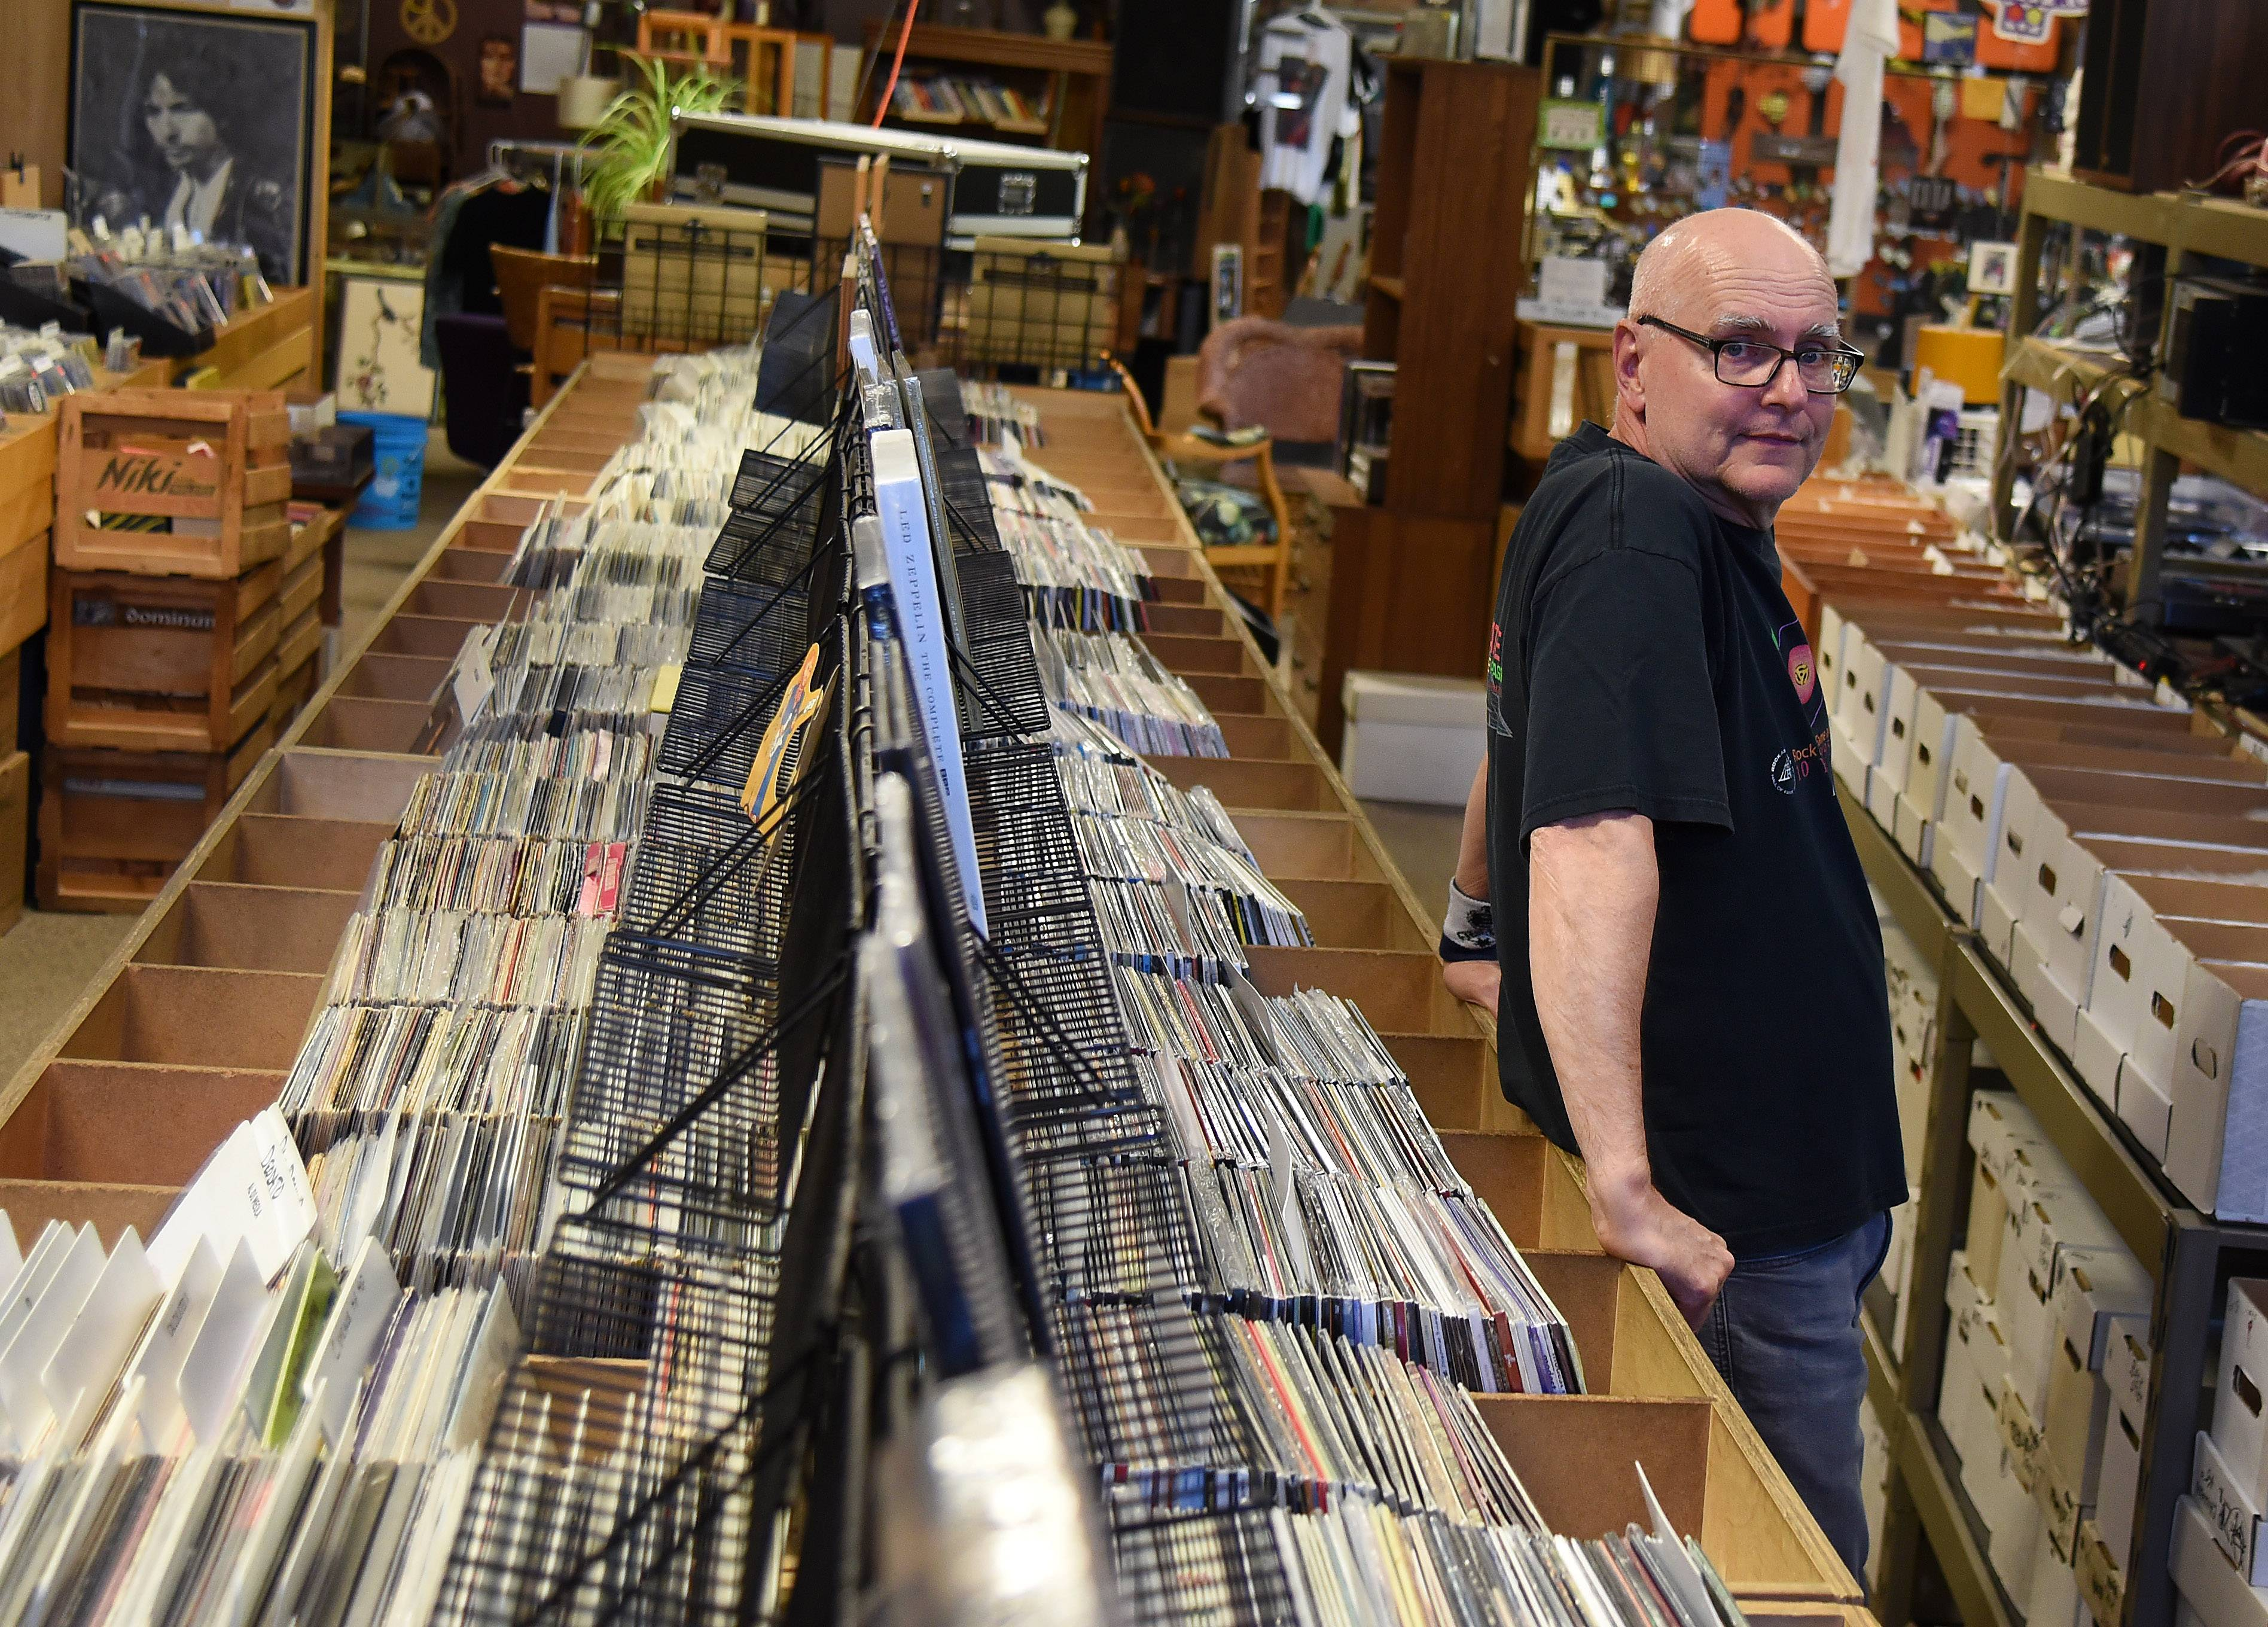 There has been a renewed interest in vinyl records over the past decade, according to Mike Messerschmidt, co-founder of Kiss the Sky records in Batavia.